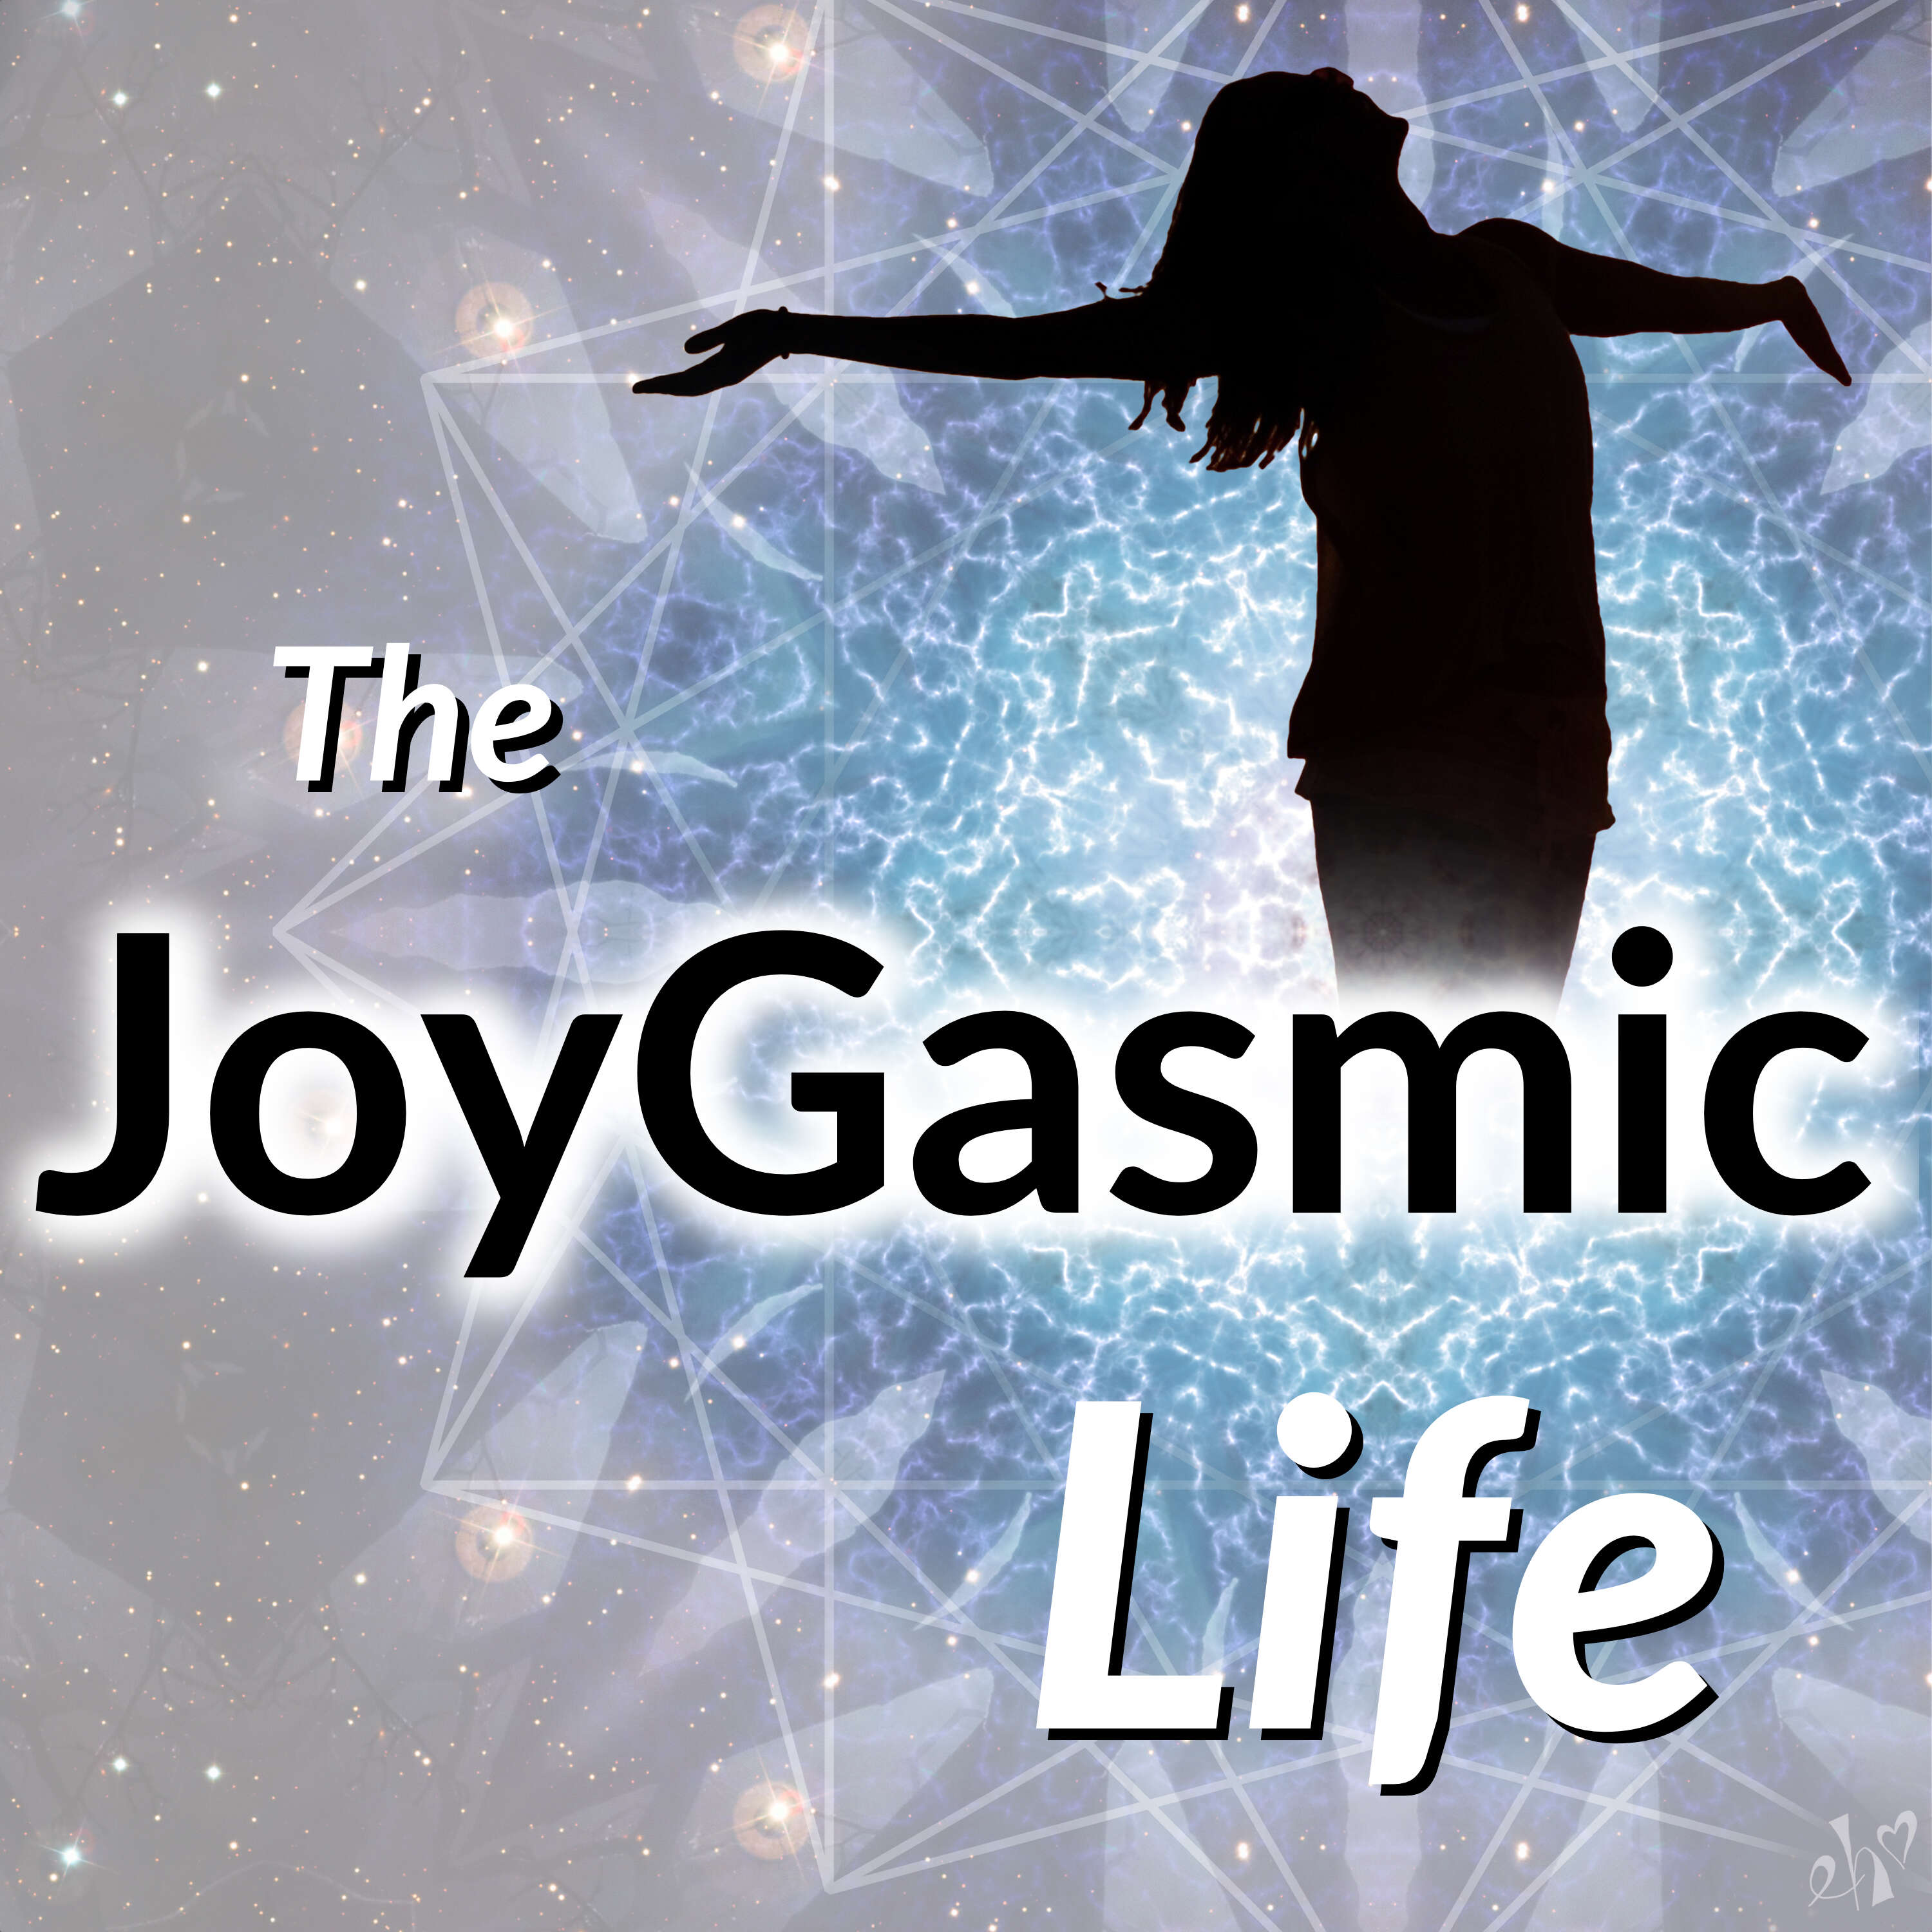 The JoyGasmic Life